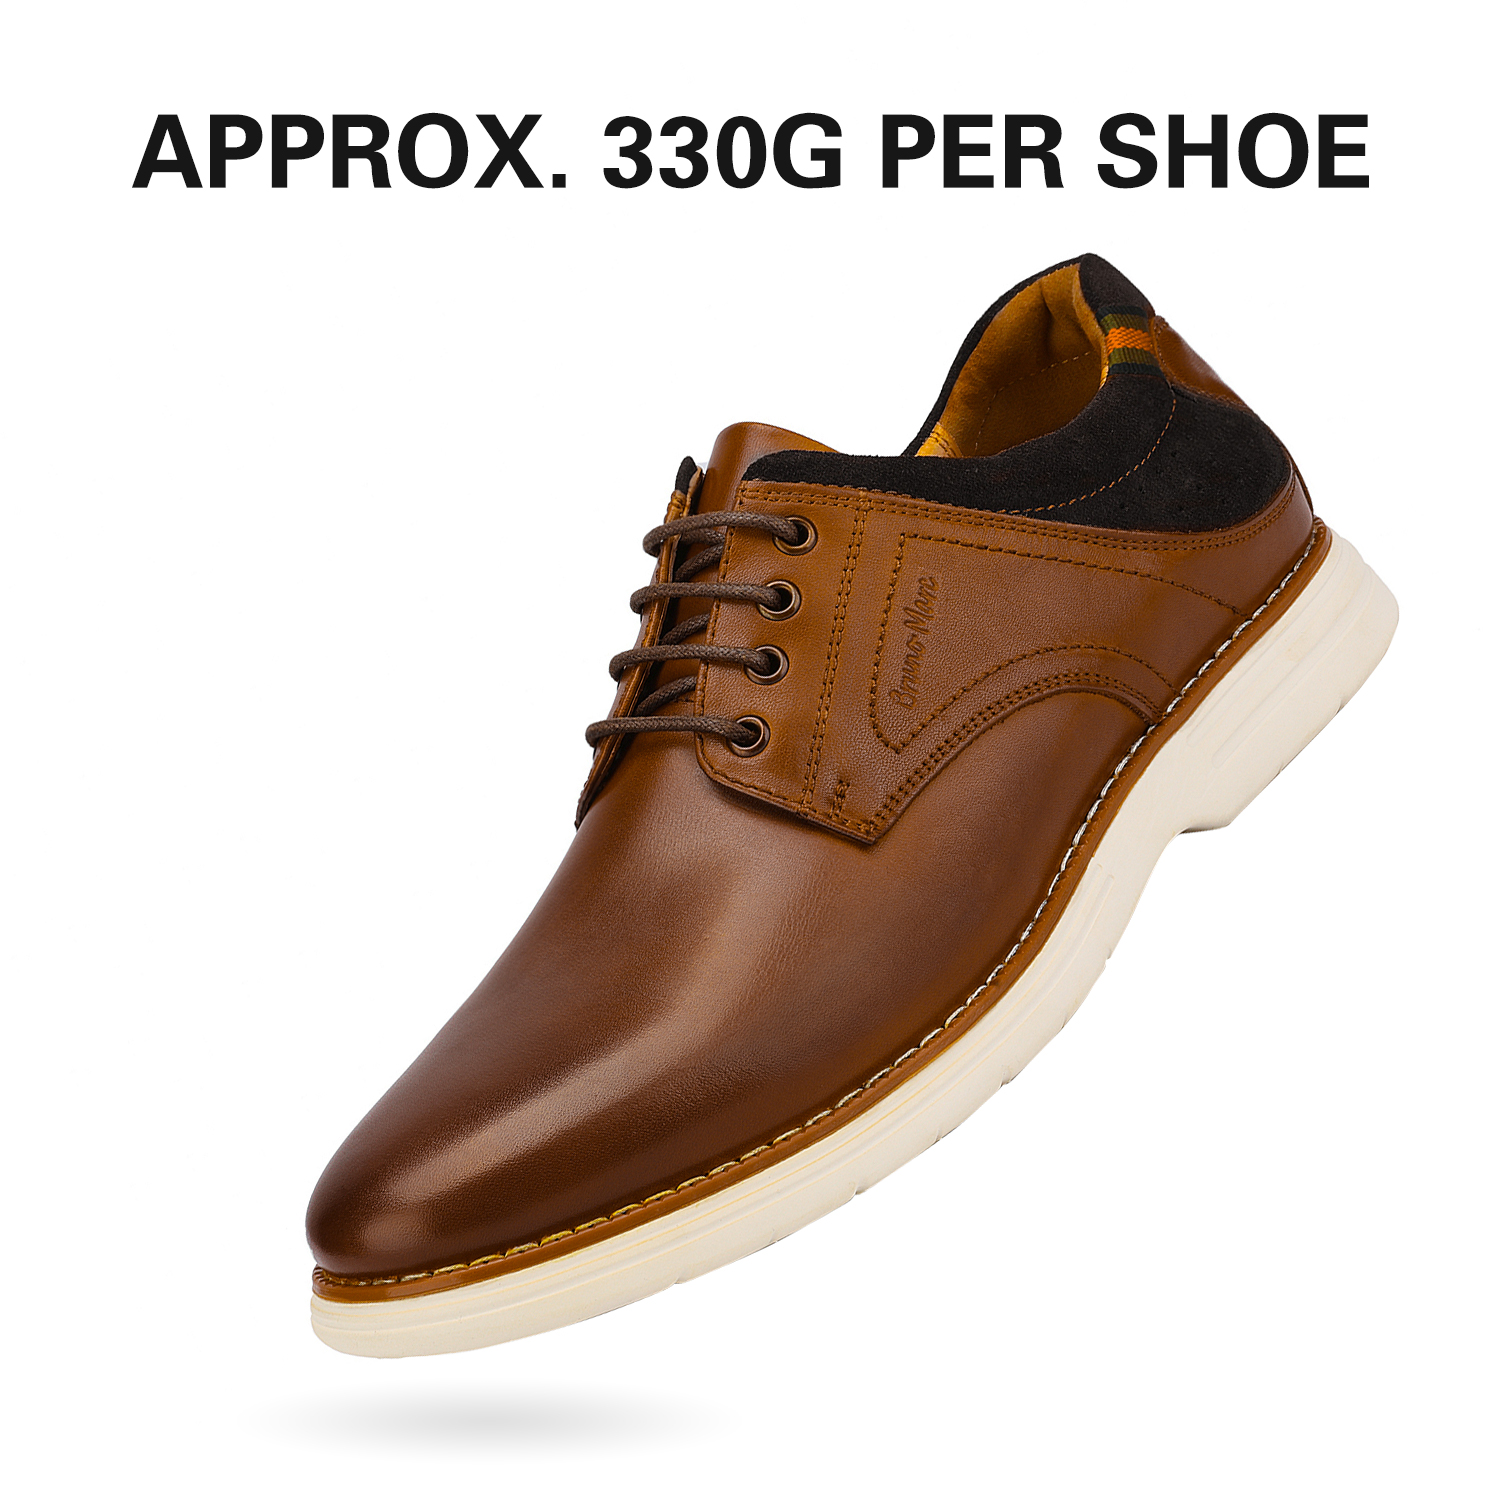 Mens-Fashion-Genuine-Leather-Business-Dress-Sneakers-Casual-Lace-up-Oxford-Shoe thumbnail 34